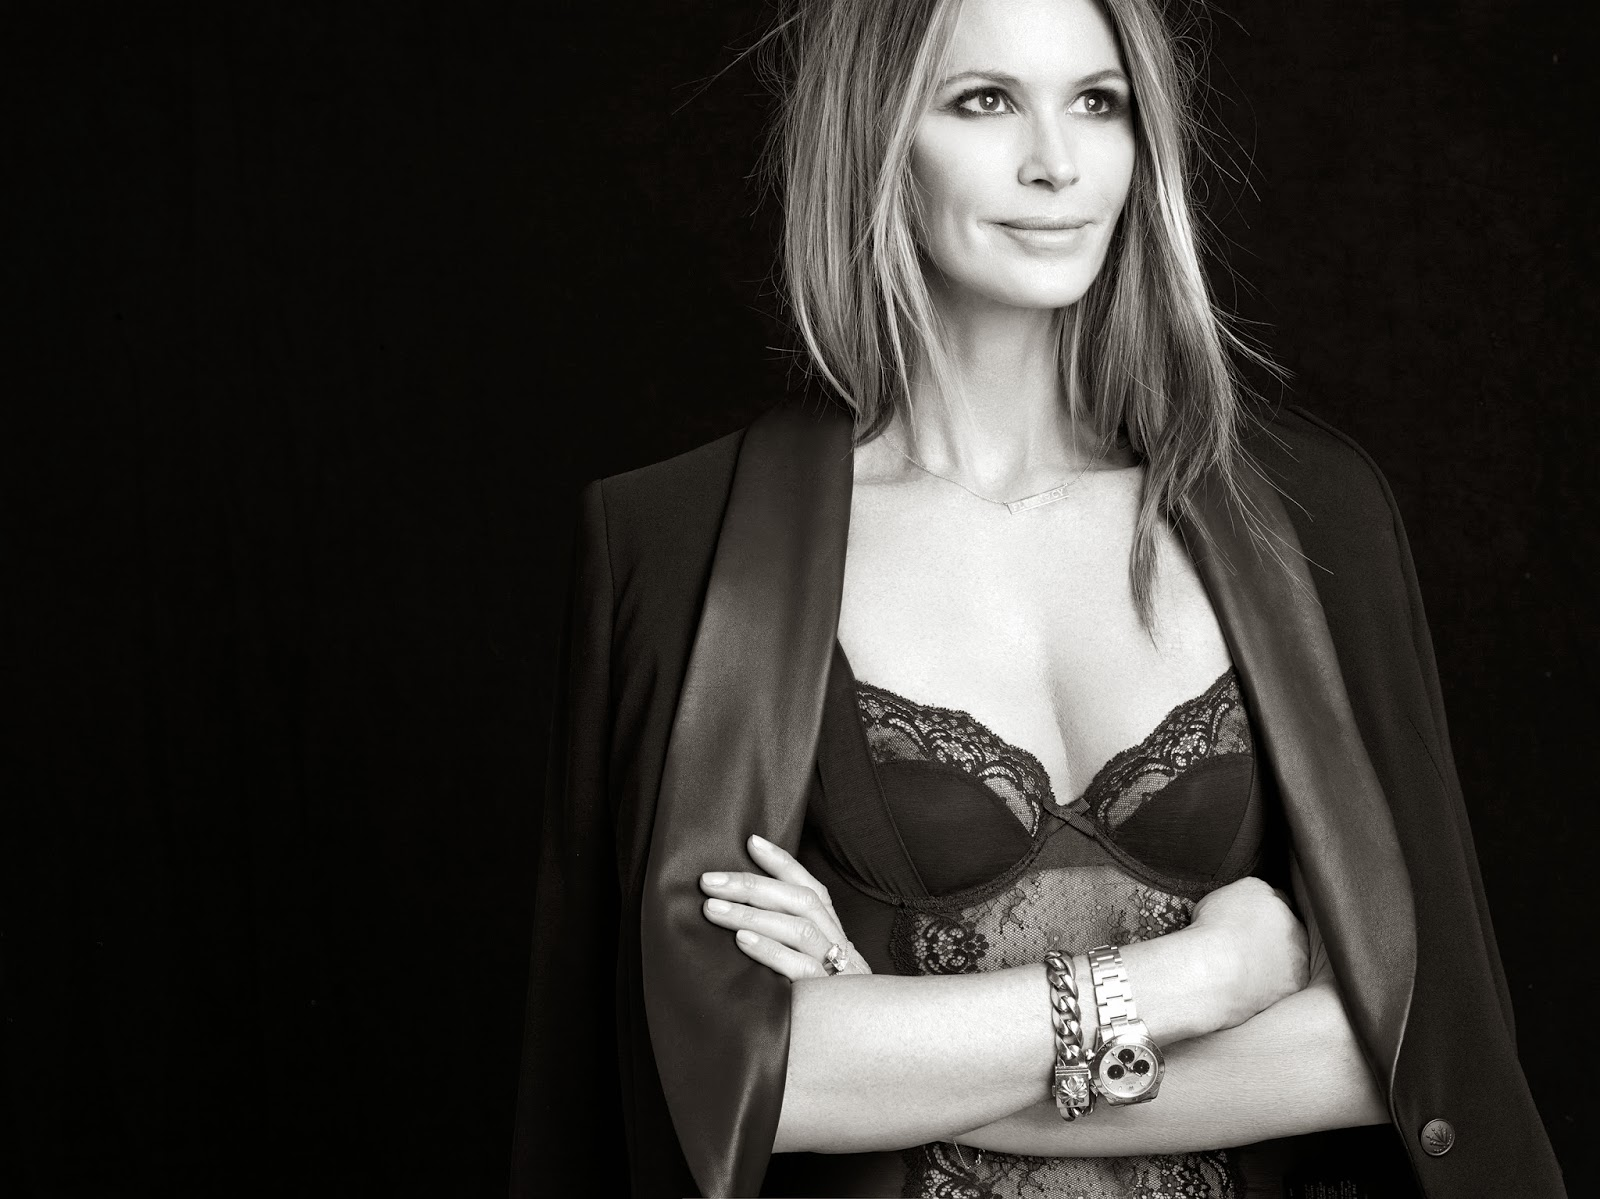 JCPenney Launches THE BODY Elle Macpherson Intimates